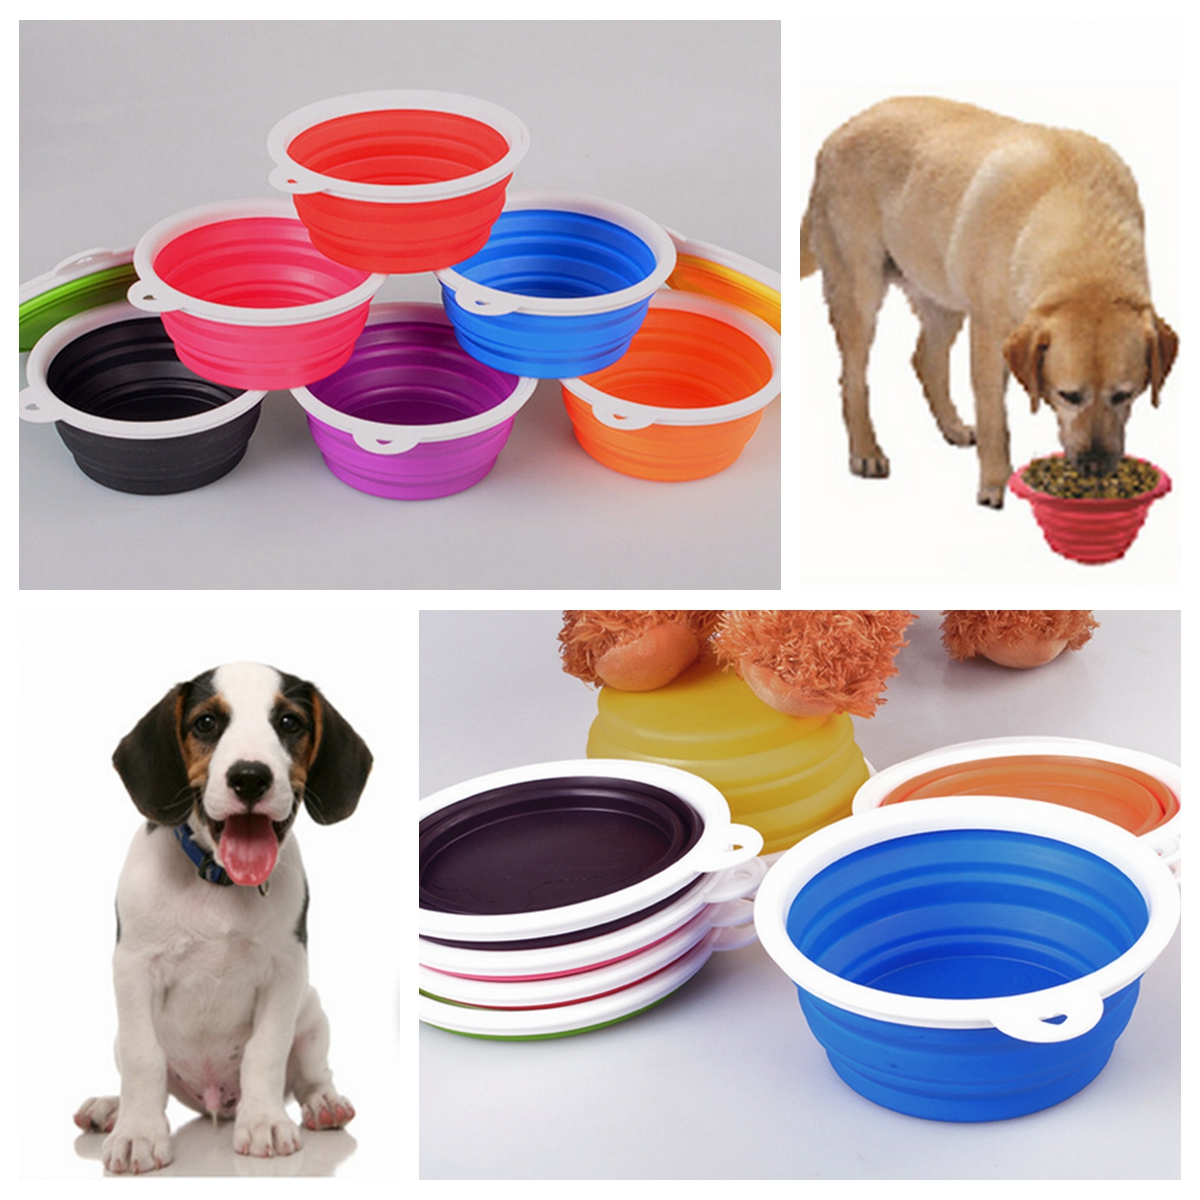 Collapsible Silicone Pet Bowl Expandable Cup Dish For Pet Dog / Cat Food Water Feeding Portable Travel Bowl